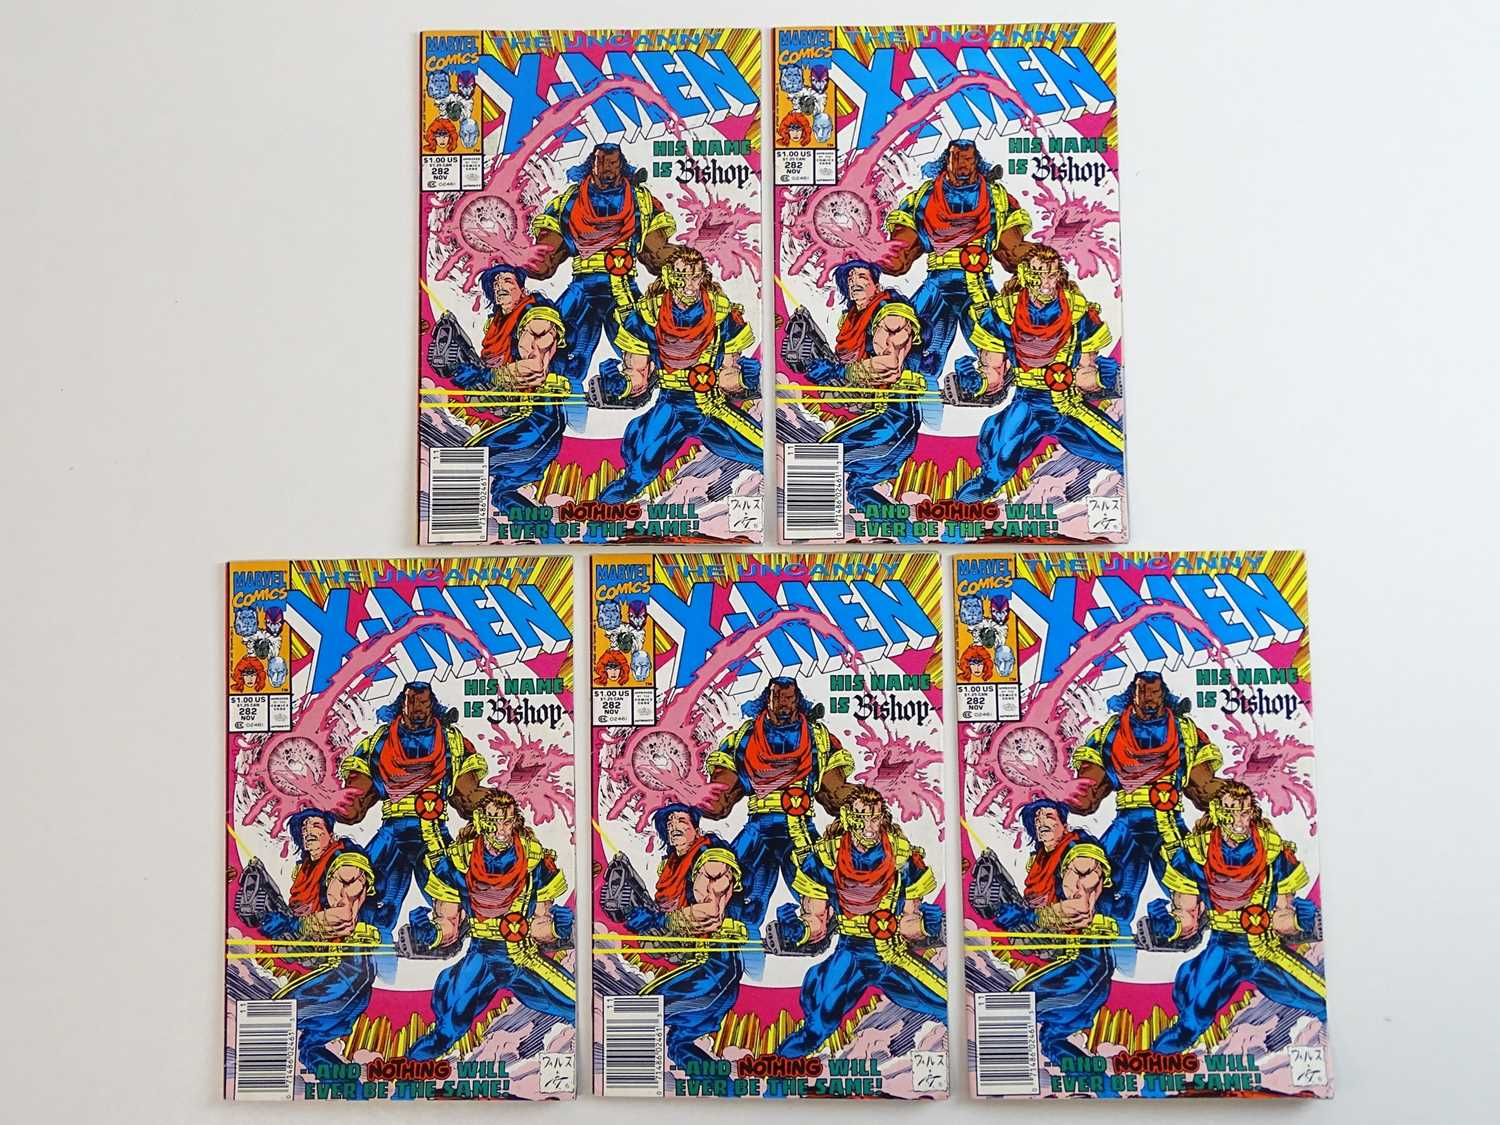 UNCANNY X-MEN #282 - (5 in Lot) - (1991 - MARVEL) - First appearance of Bishop + First appearance